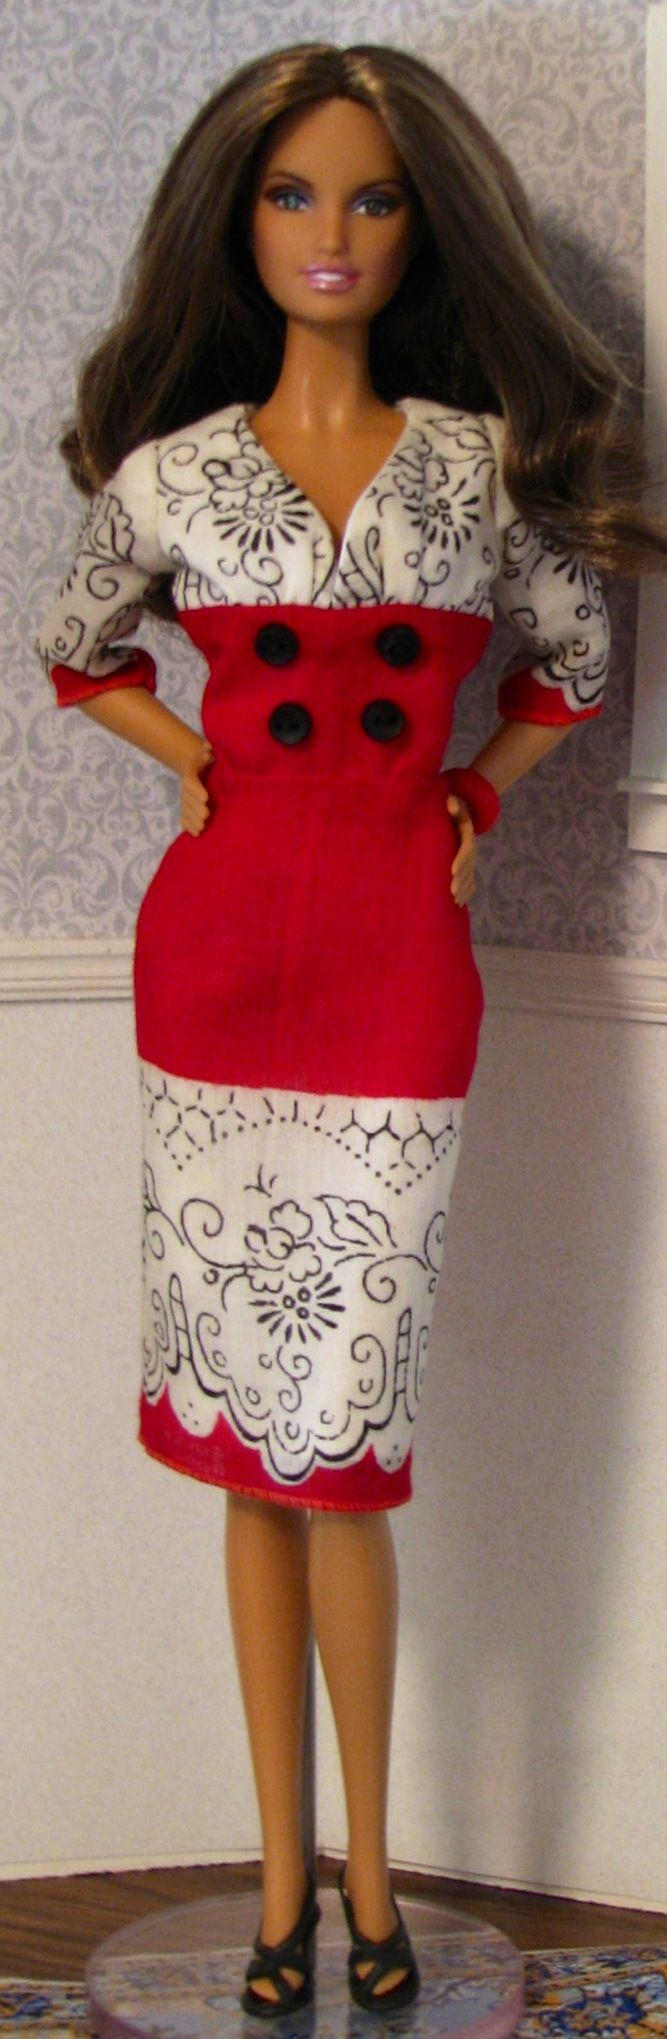 Red dress for christmas party zone